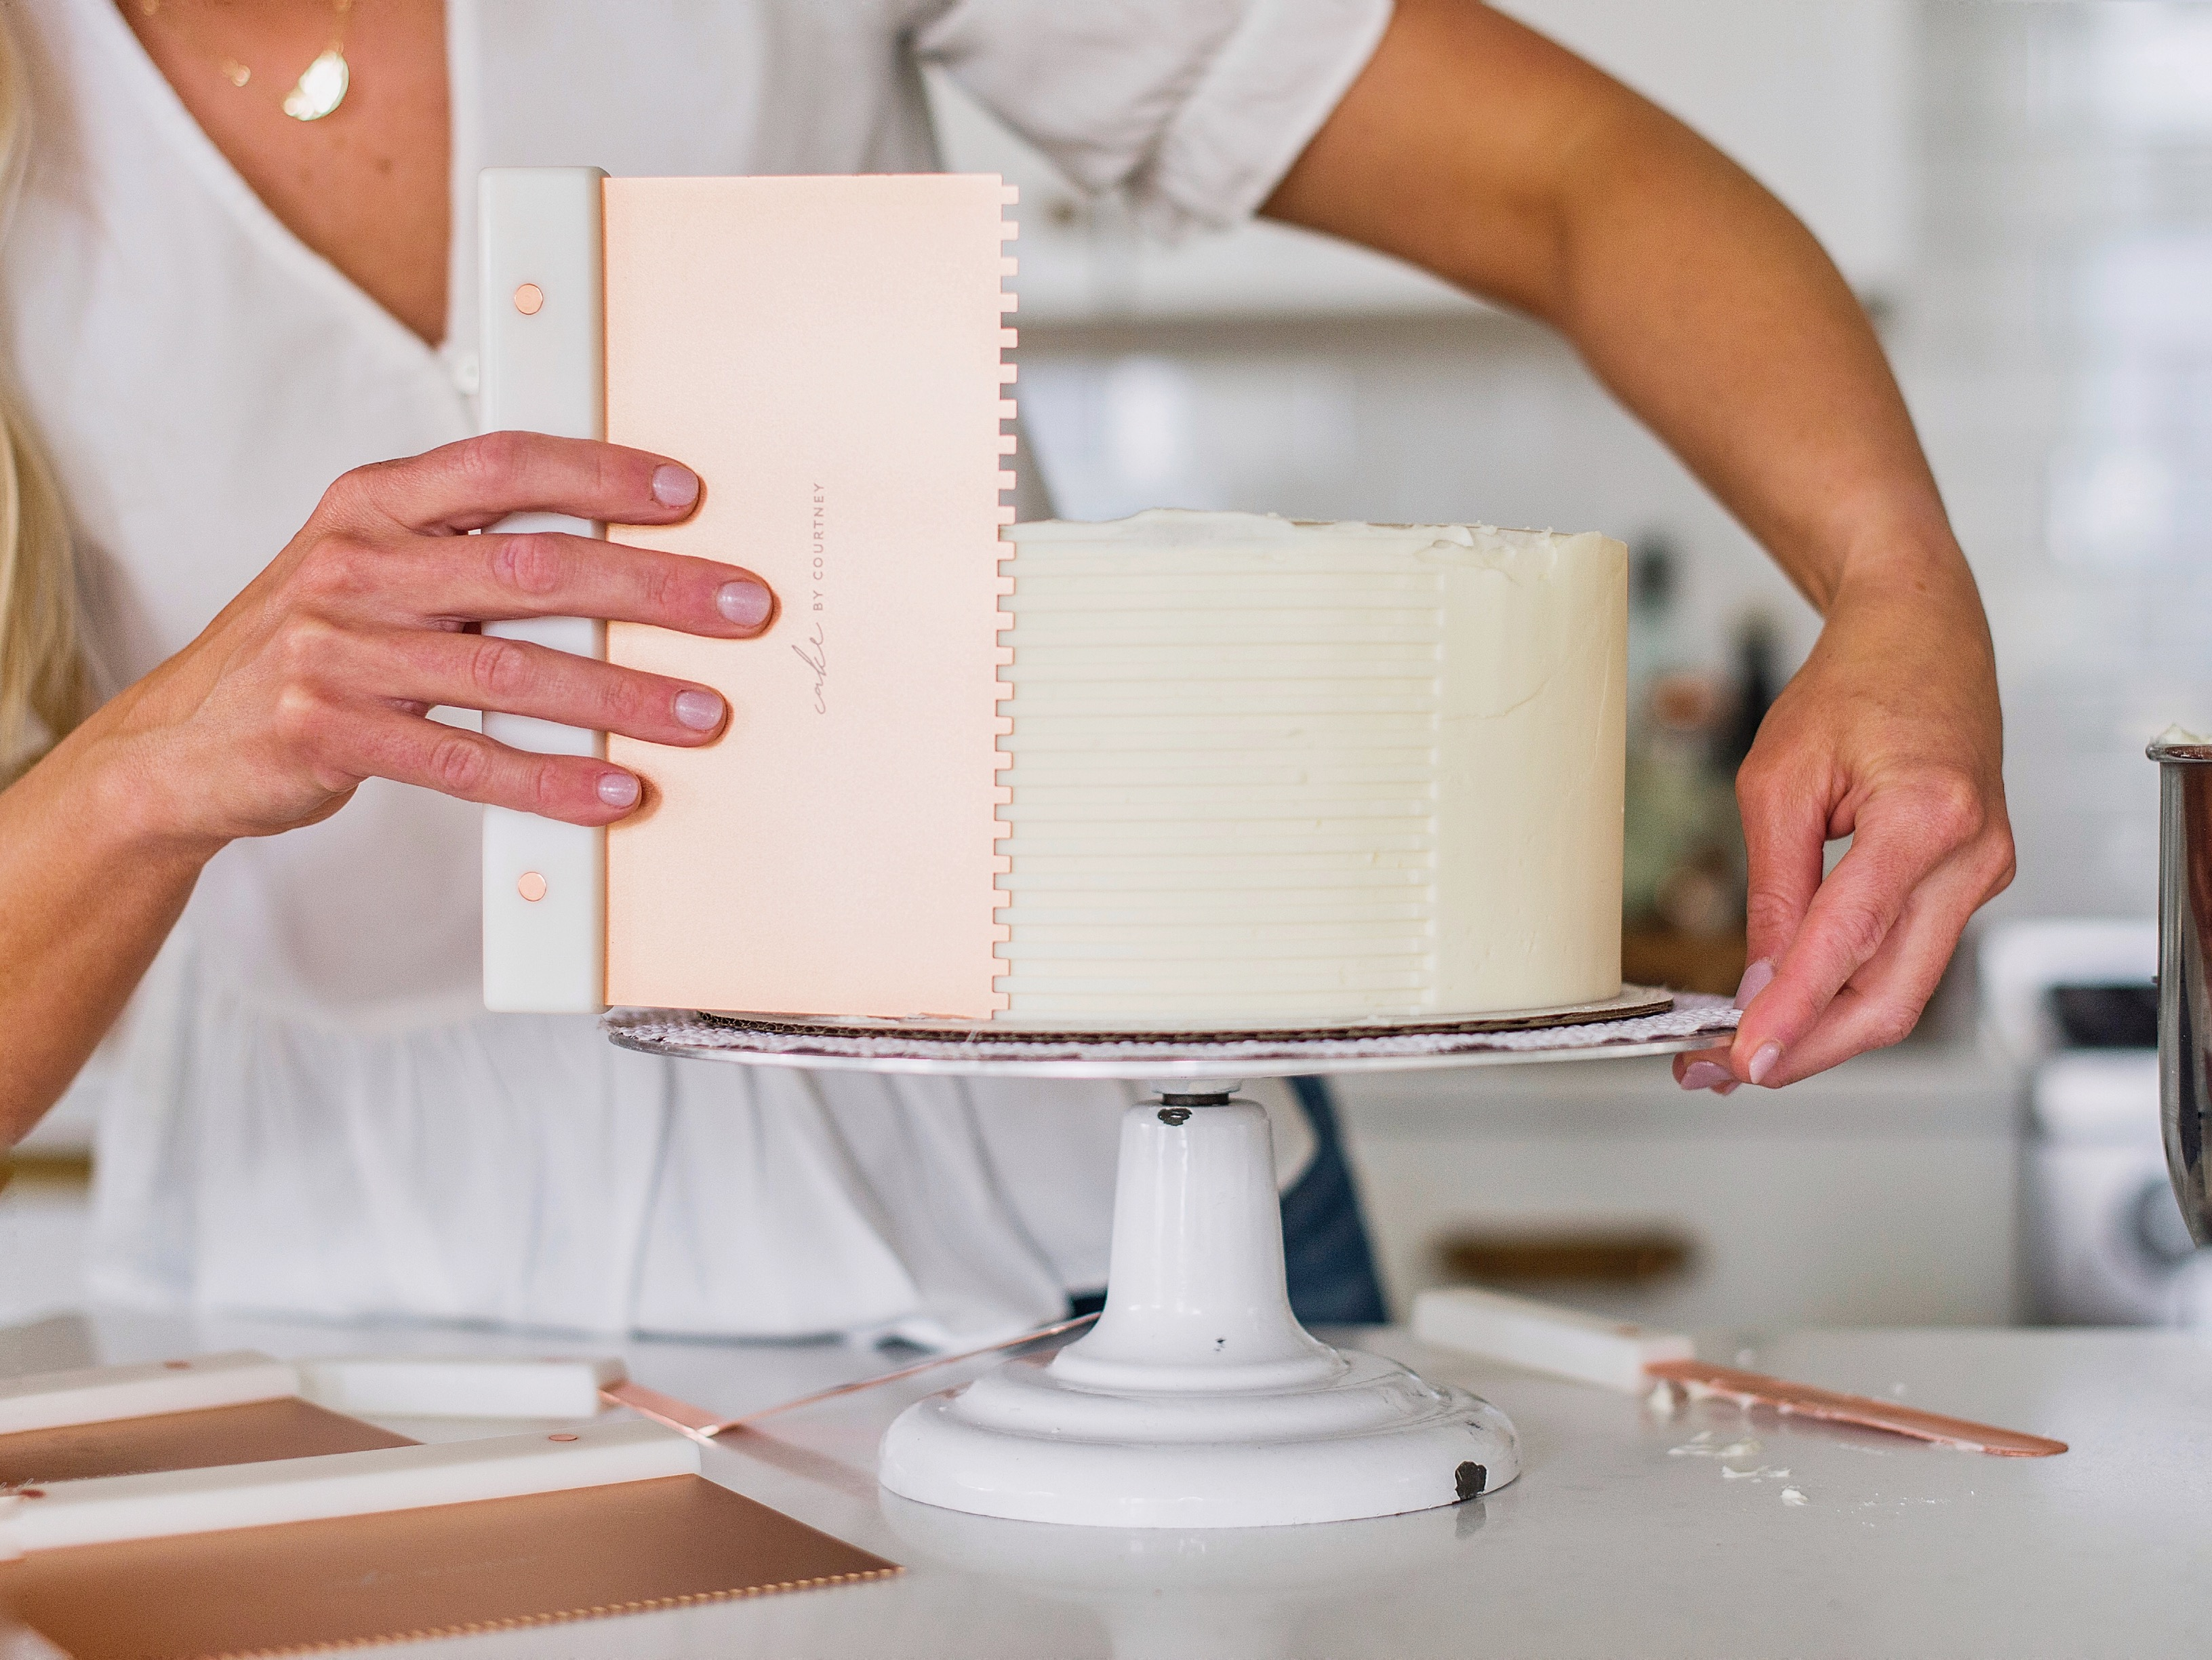 Ido Fishman Highlights Cake Decorating Tools that Every Beginner Should Have